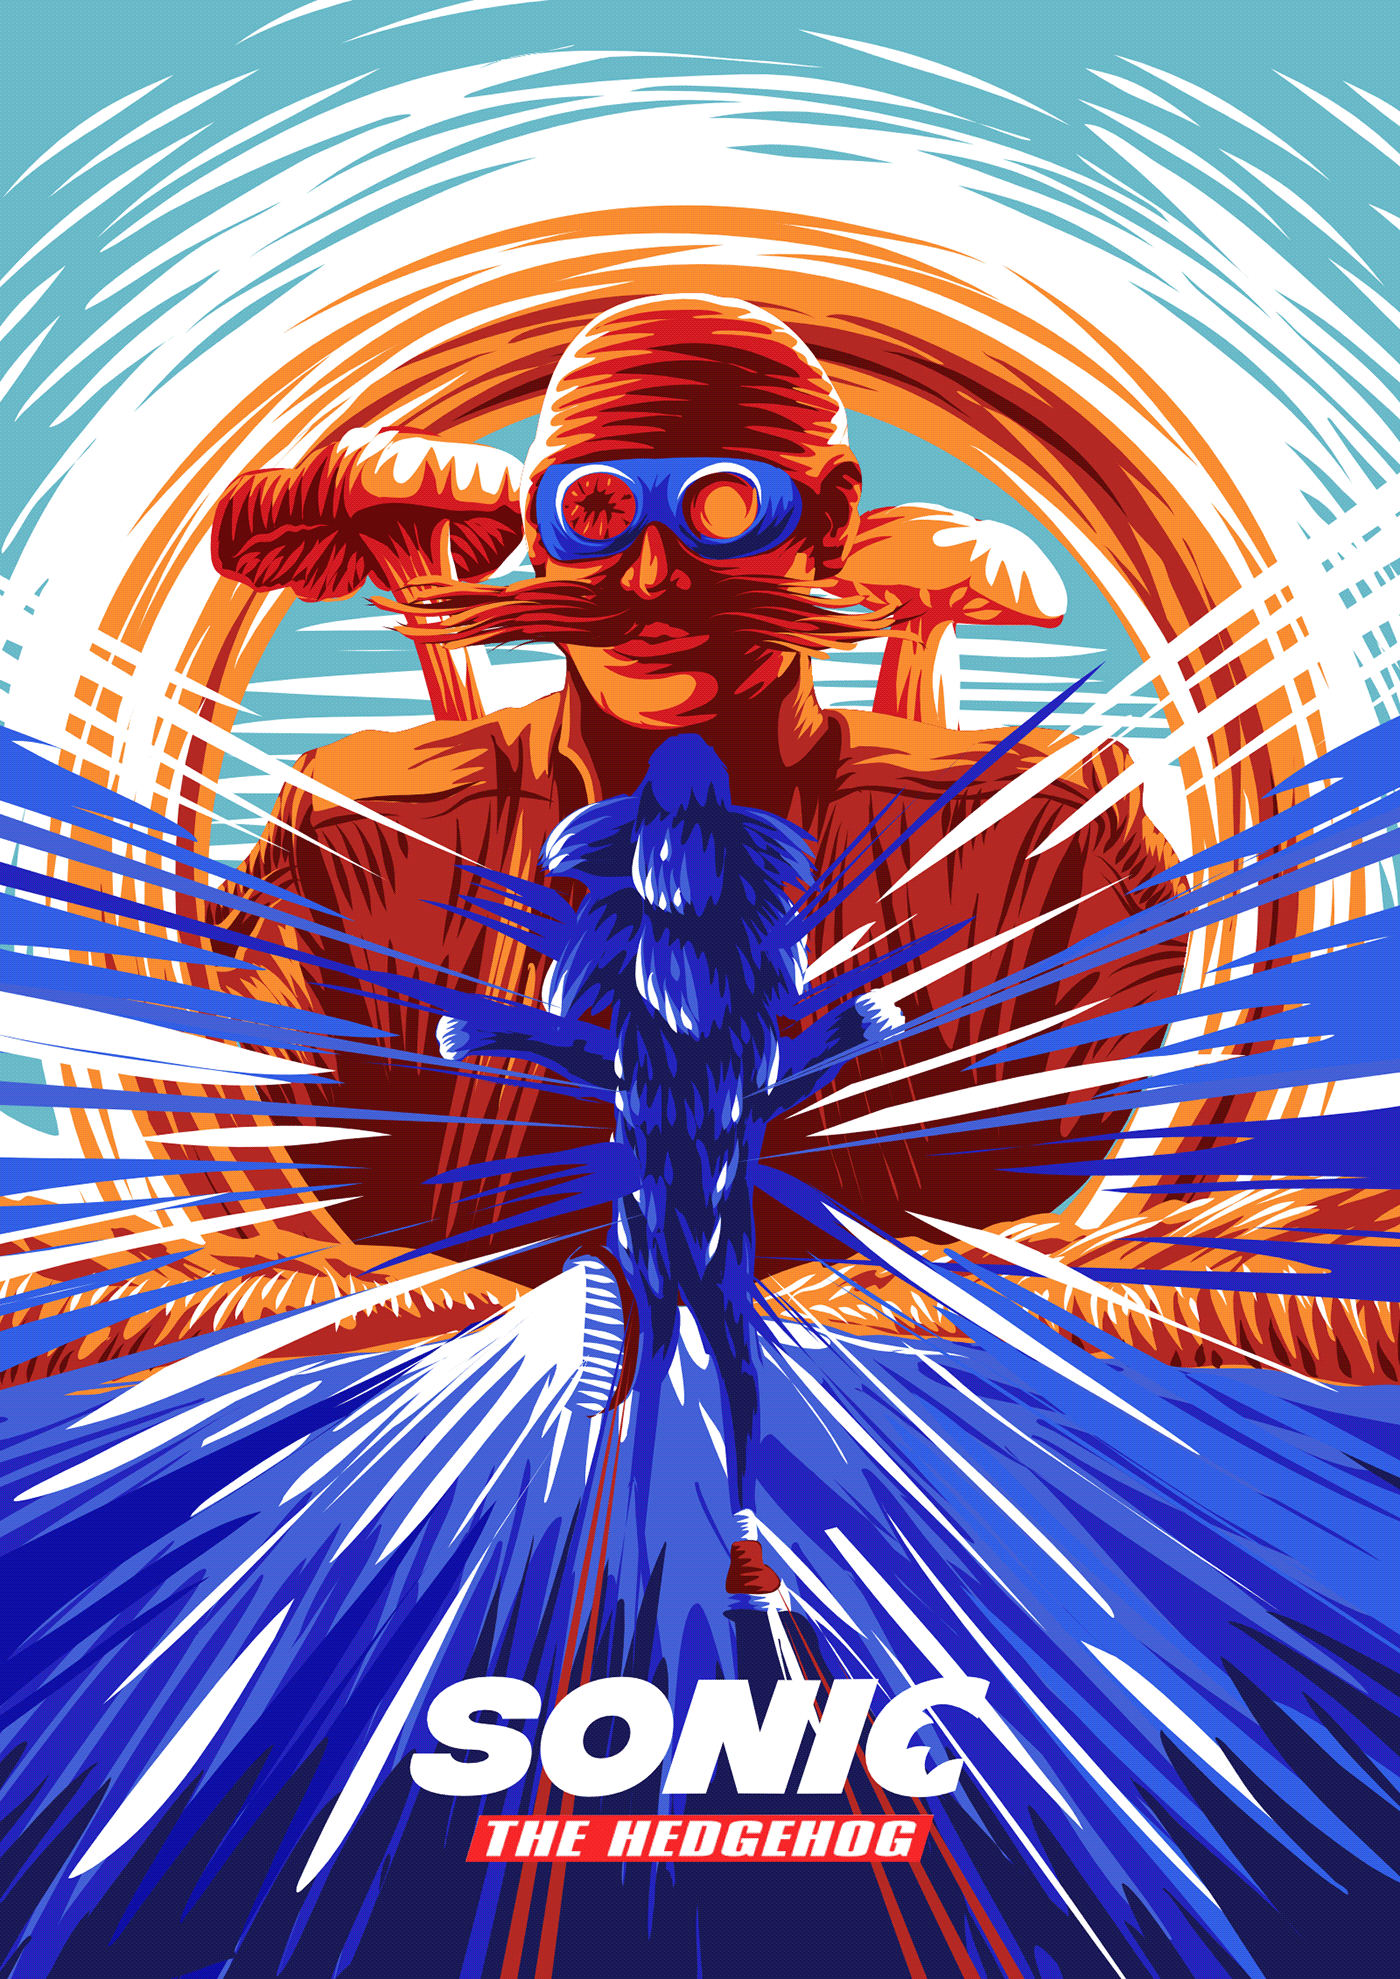 Sonic The Hedgehog Official Alternative Movie Poster On Behance